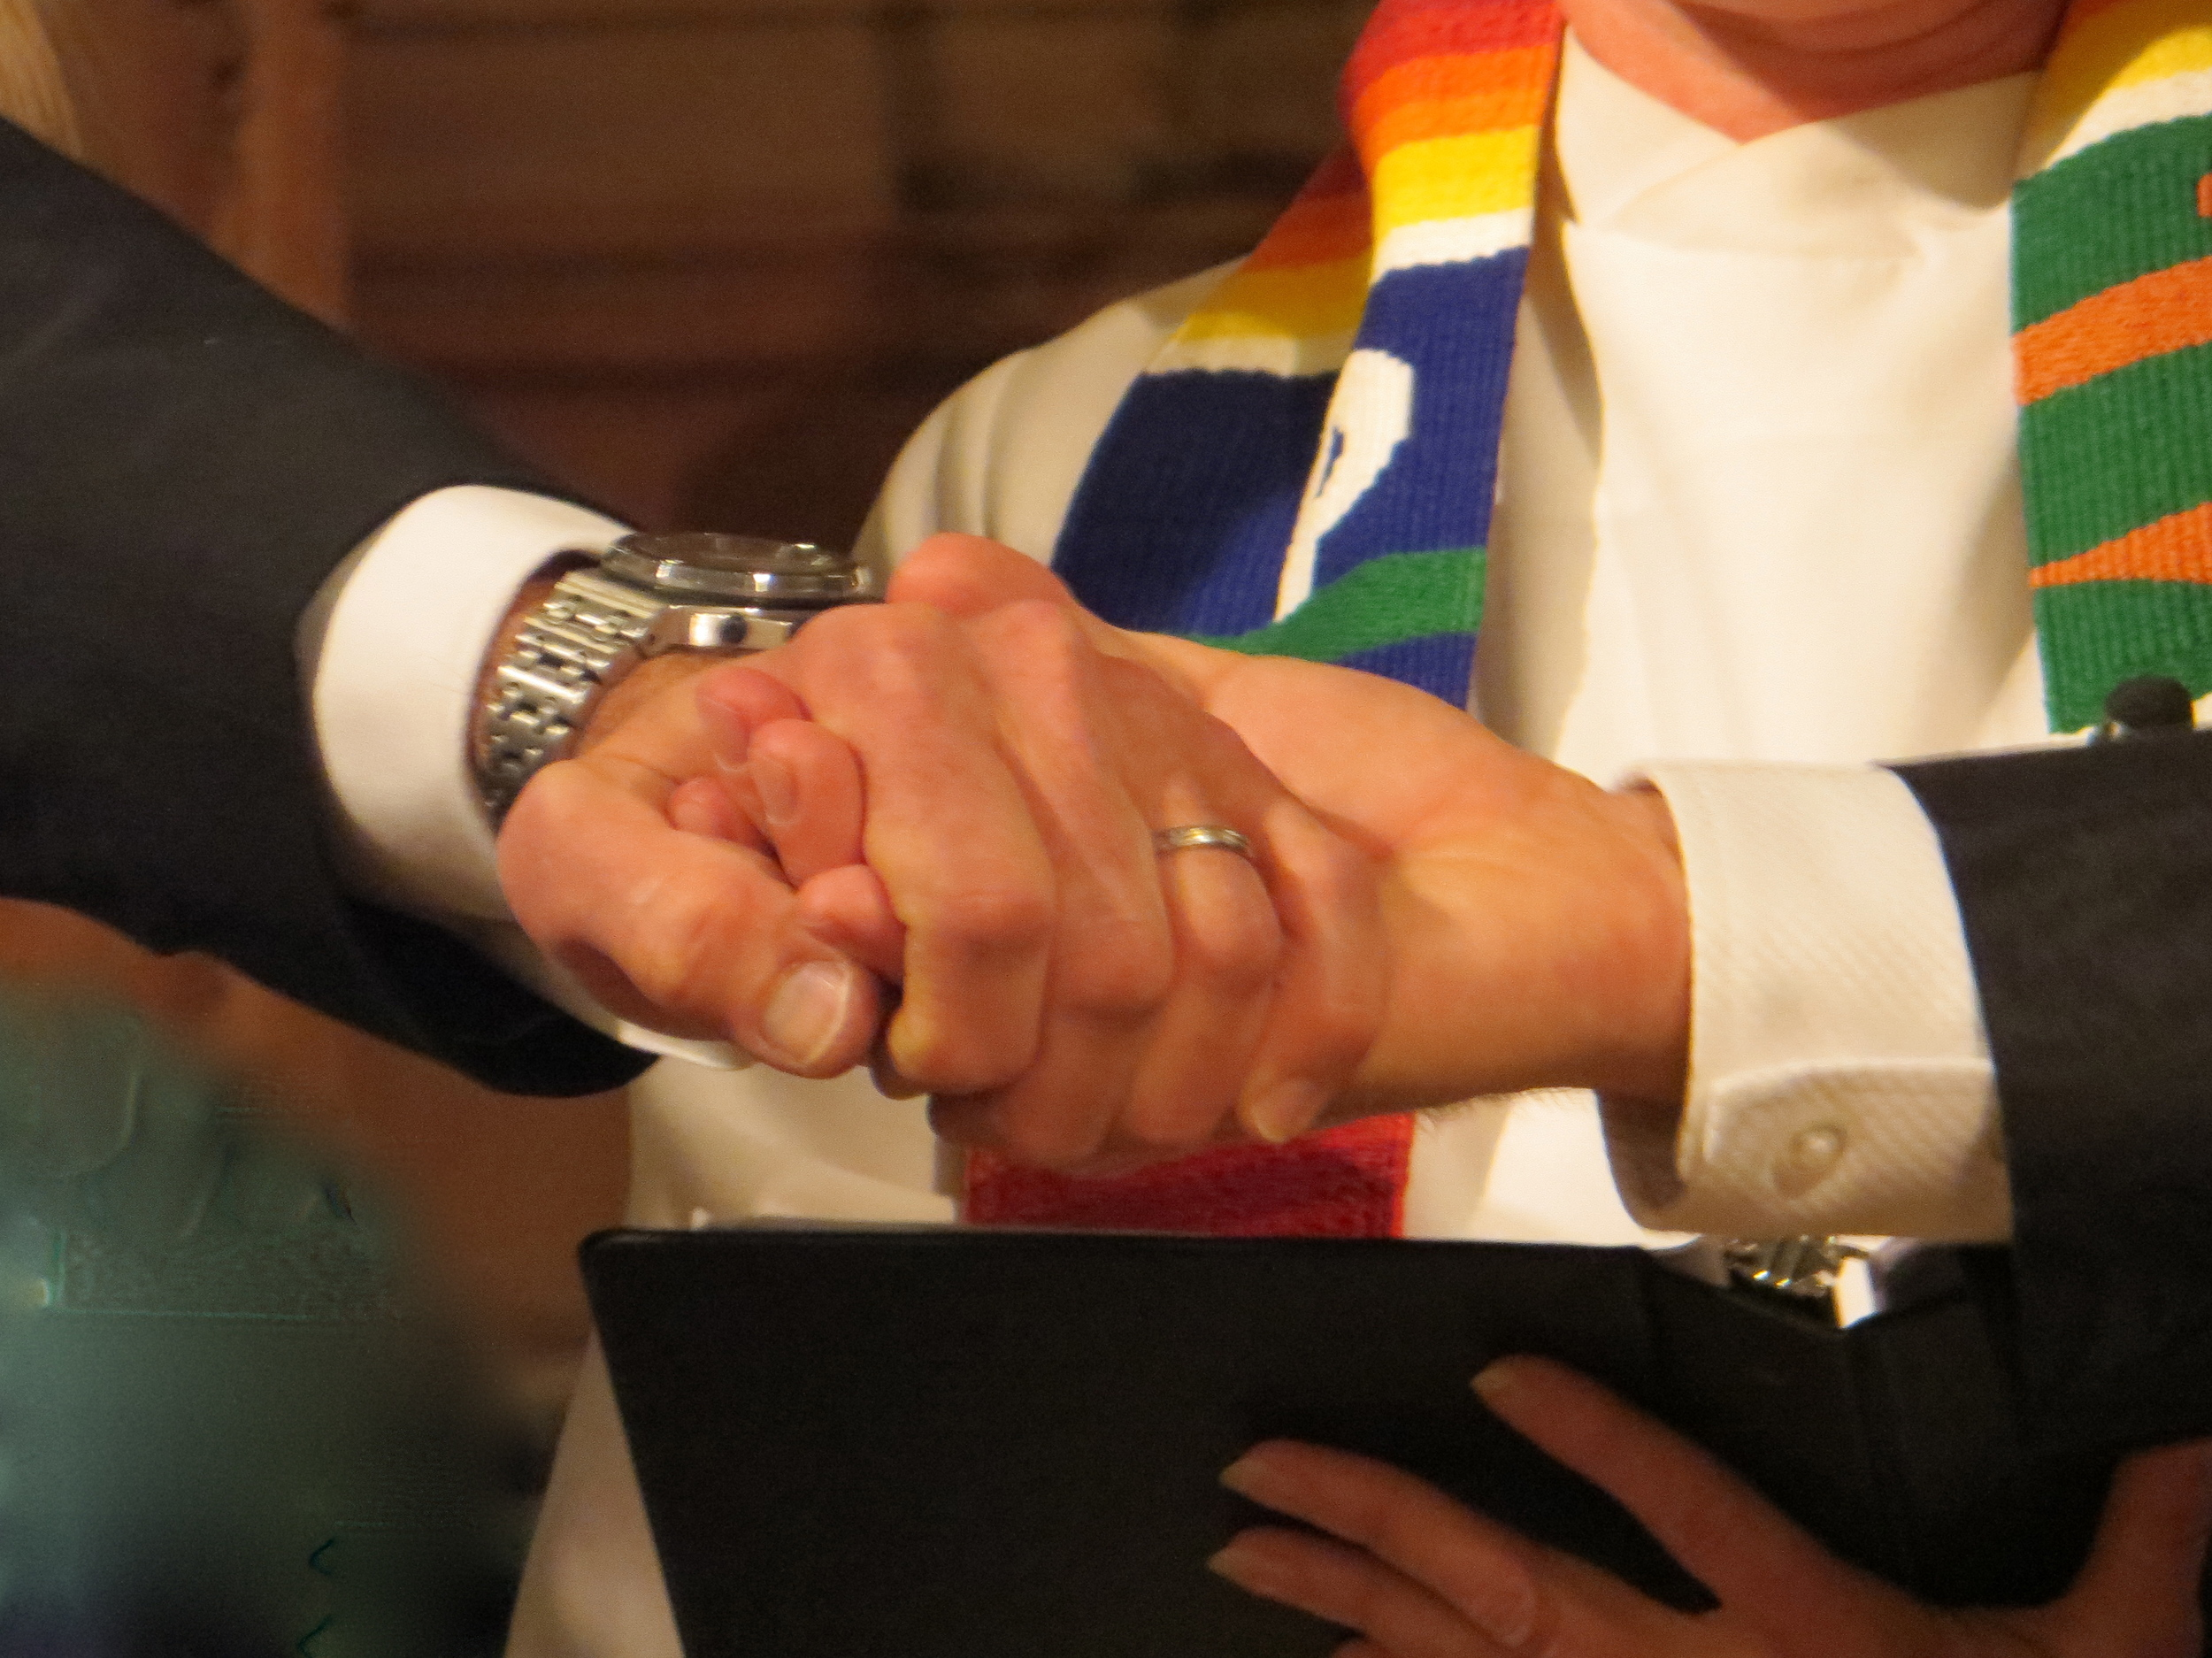 The first same-gender marriage legally performed in Montclair was at the Montclair Wedding Sanctuary at First Congregational Church.